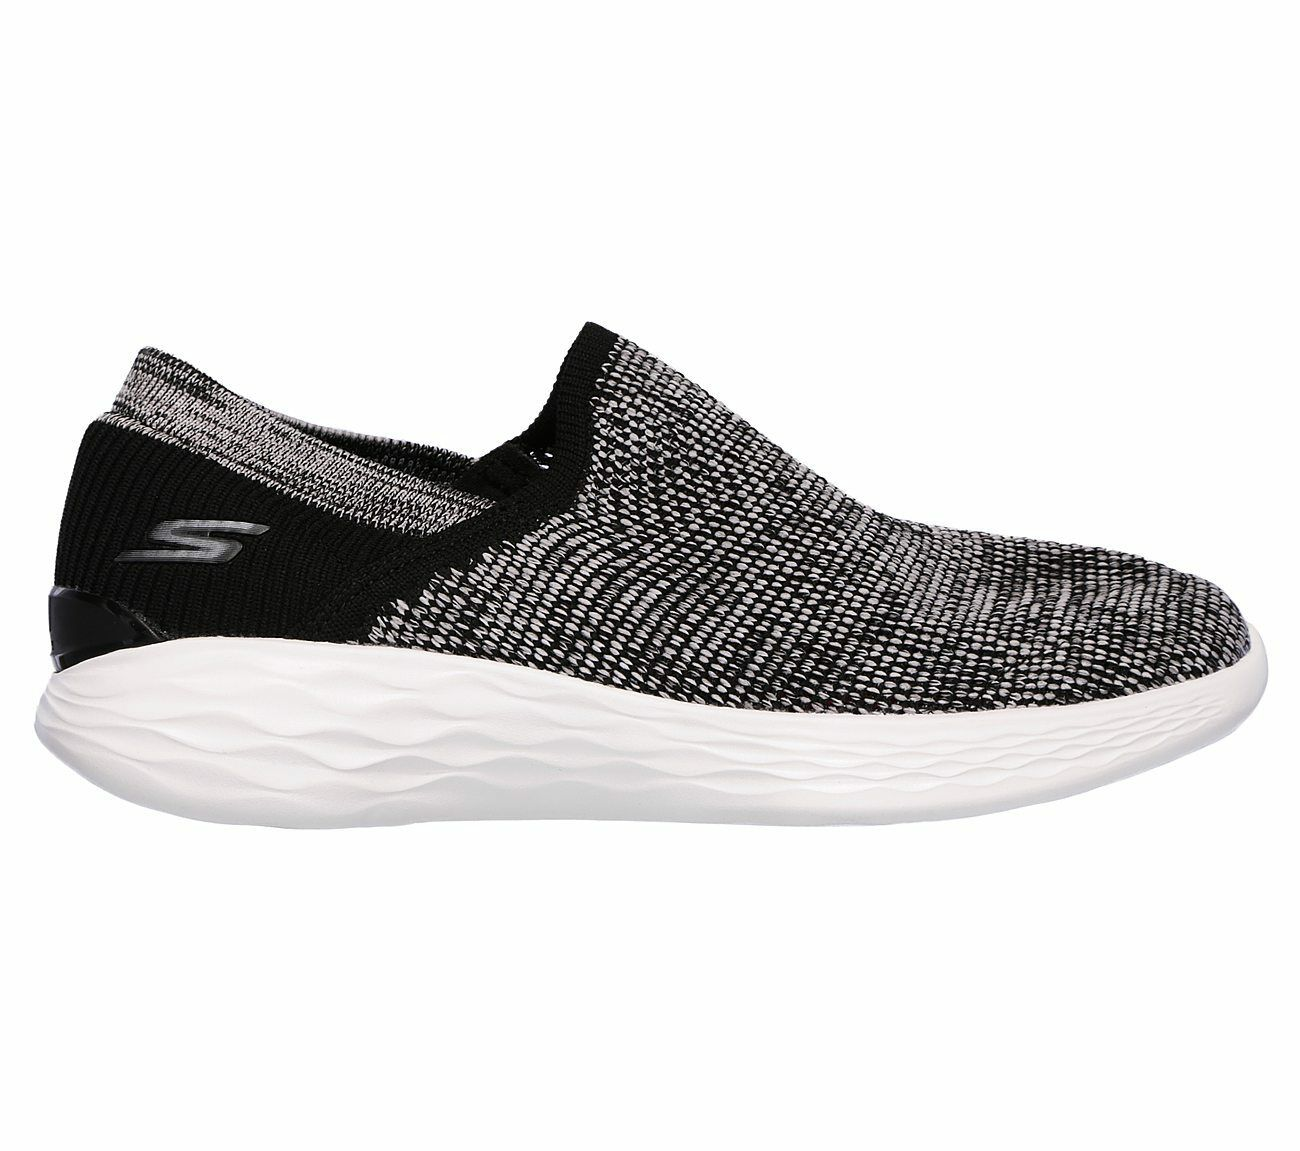 Skechers You - Lifestyle Gehoben Turnschuhe Damen Memory Foam Lifestyle - Ballerinas Schuhe 6e2217